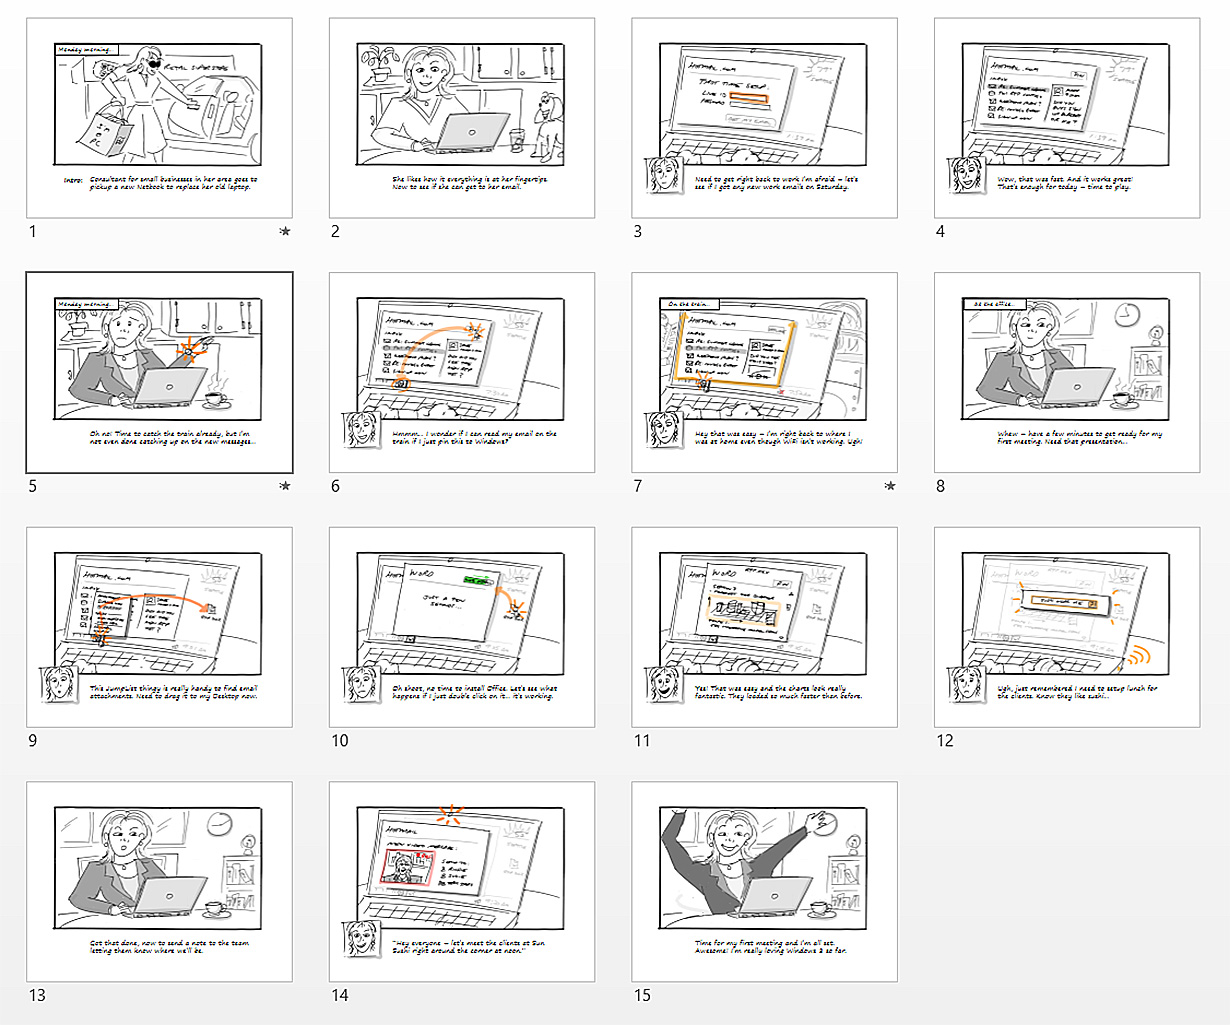 Windows 8 storyboard